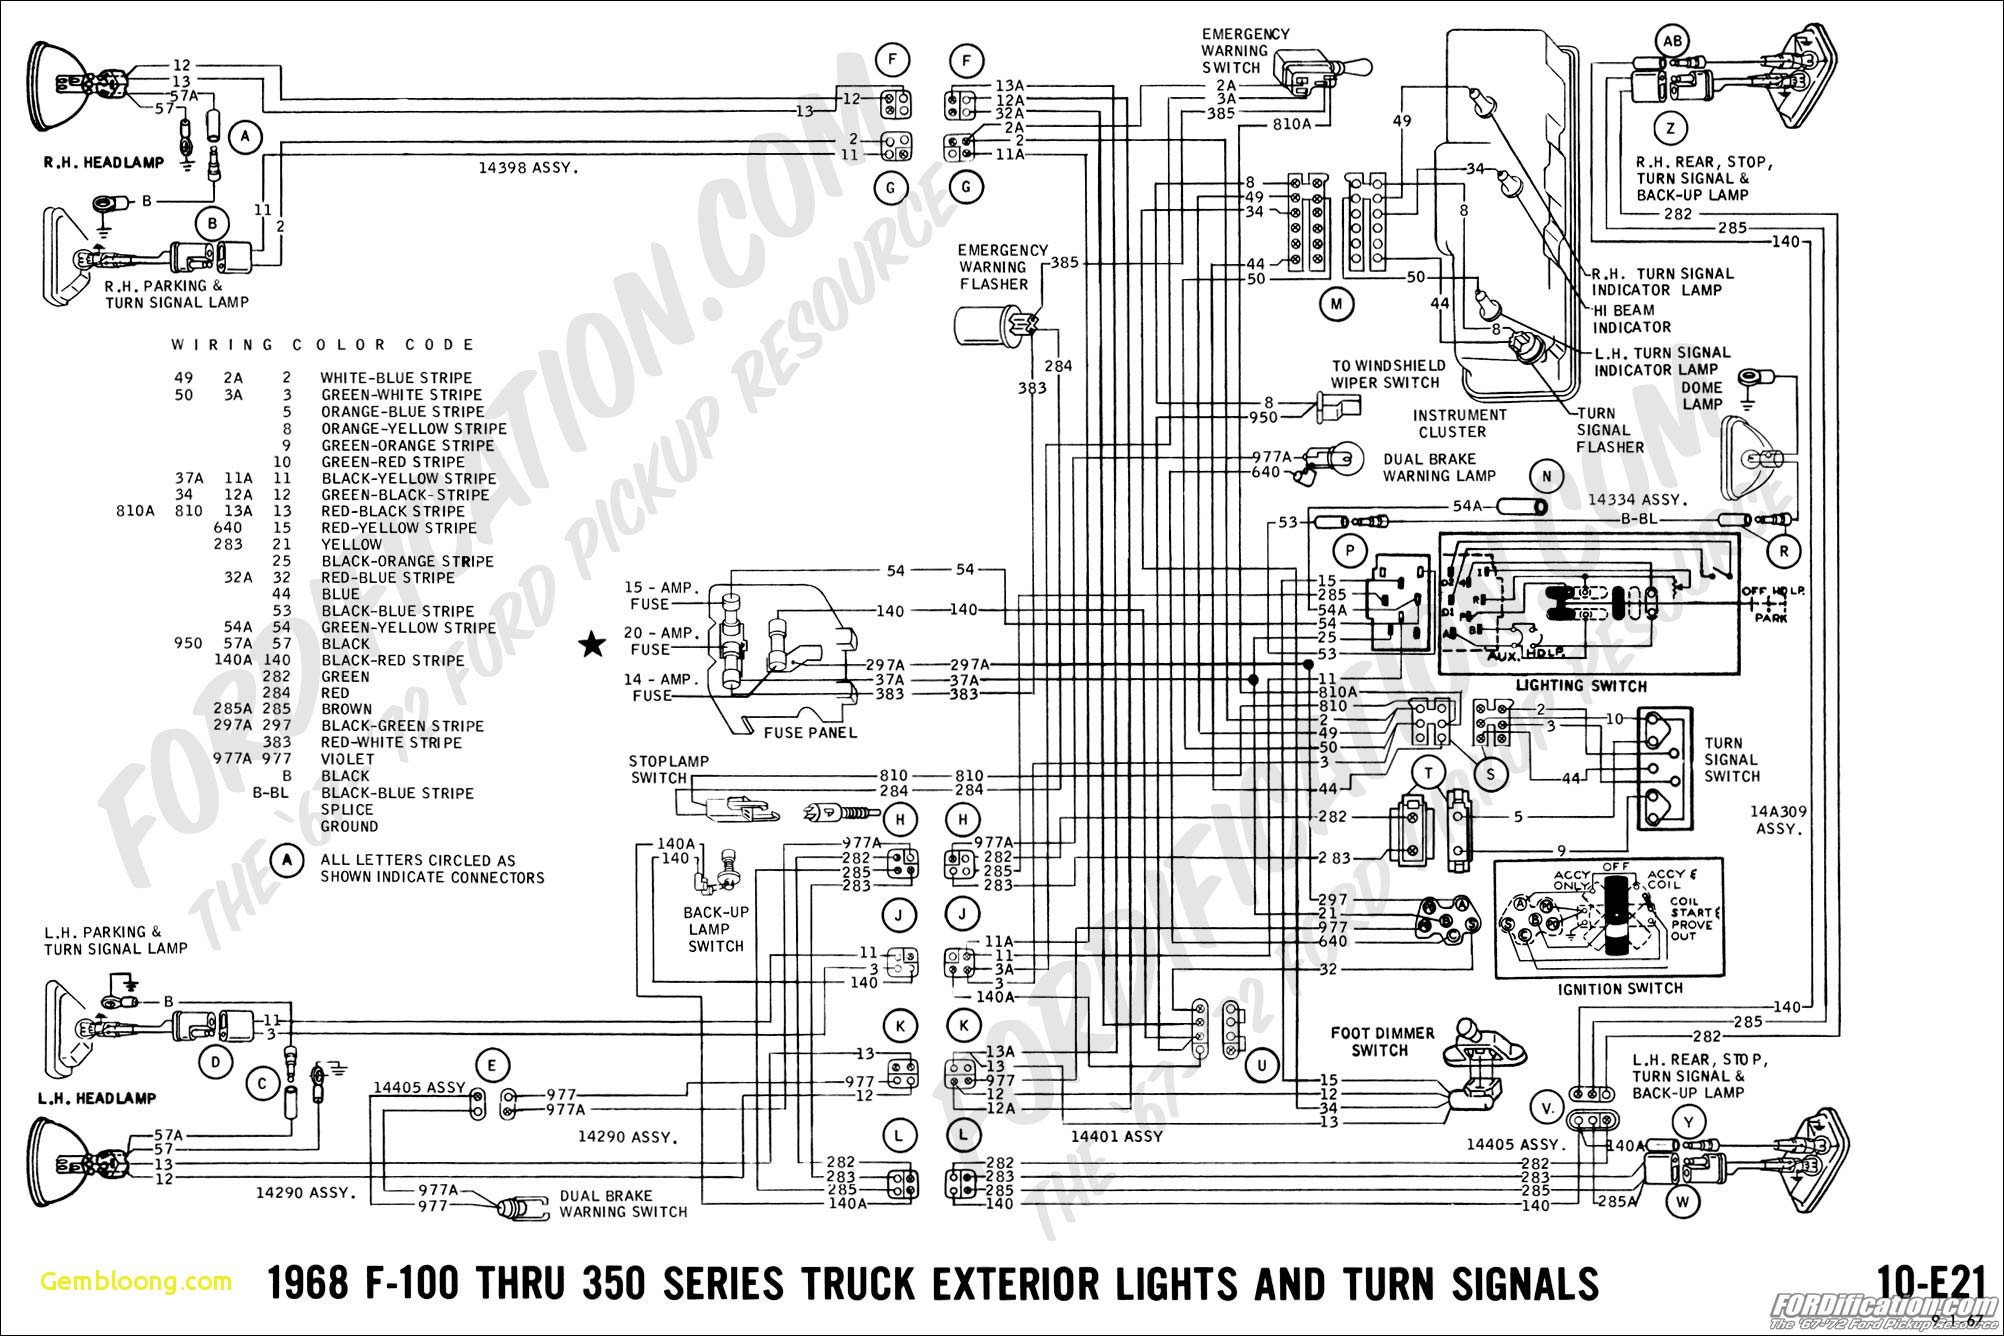 ford cobra 460 wiring diagram best wiring library Ford Mustang Power Window Wiring Schematic 1996 mustang cobra convertible top wiring diagram auto electrical mach 460 sound system diagram 1996 ford